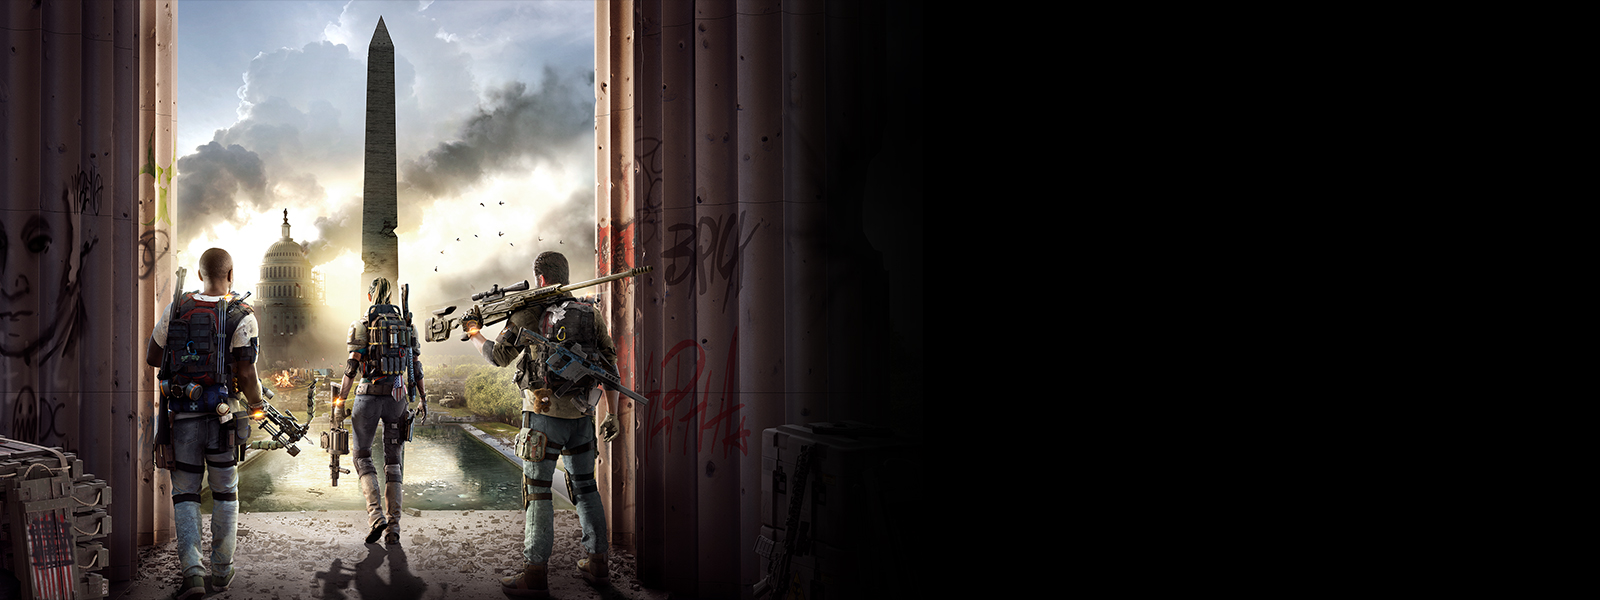 Three in-game Division 2 players looking on Washington D.C., which is smoking and clearly under attack